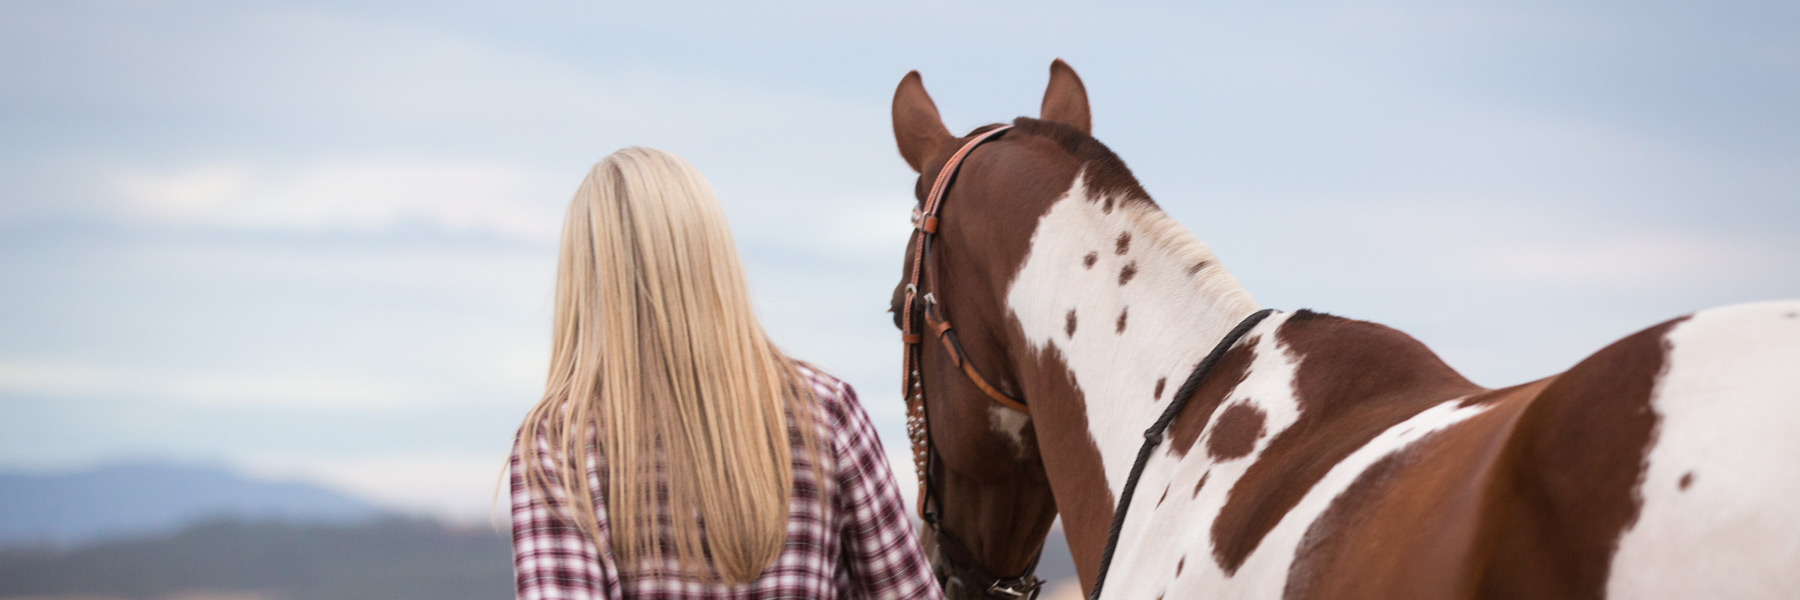 Girl and Horse Subpage Header